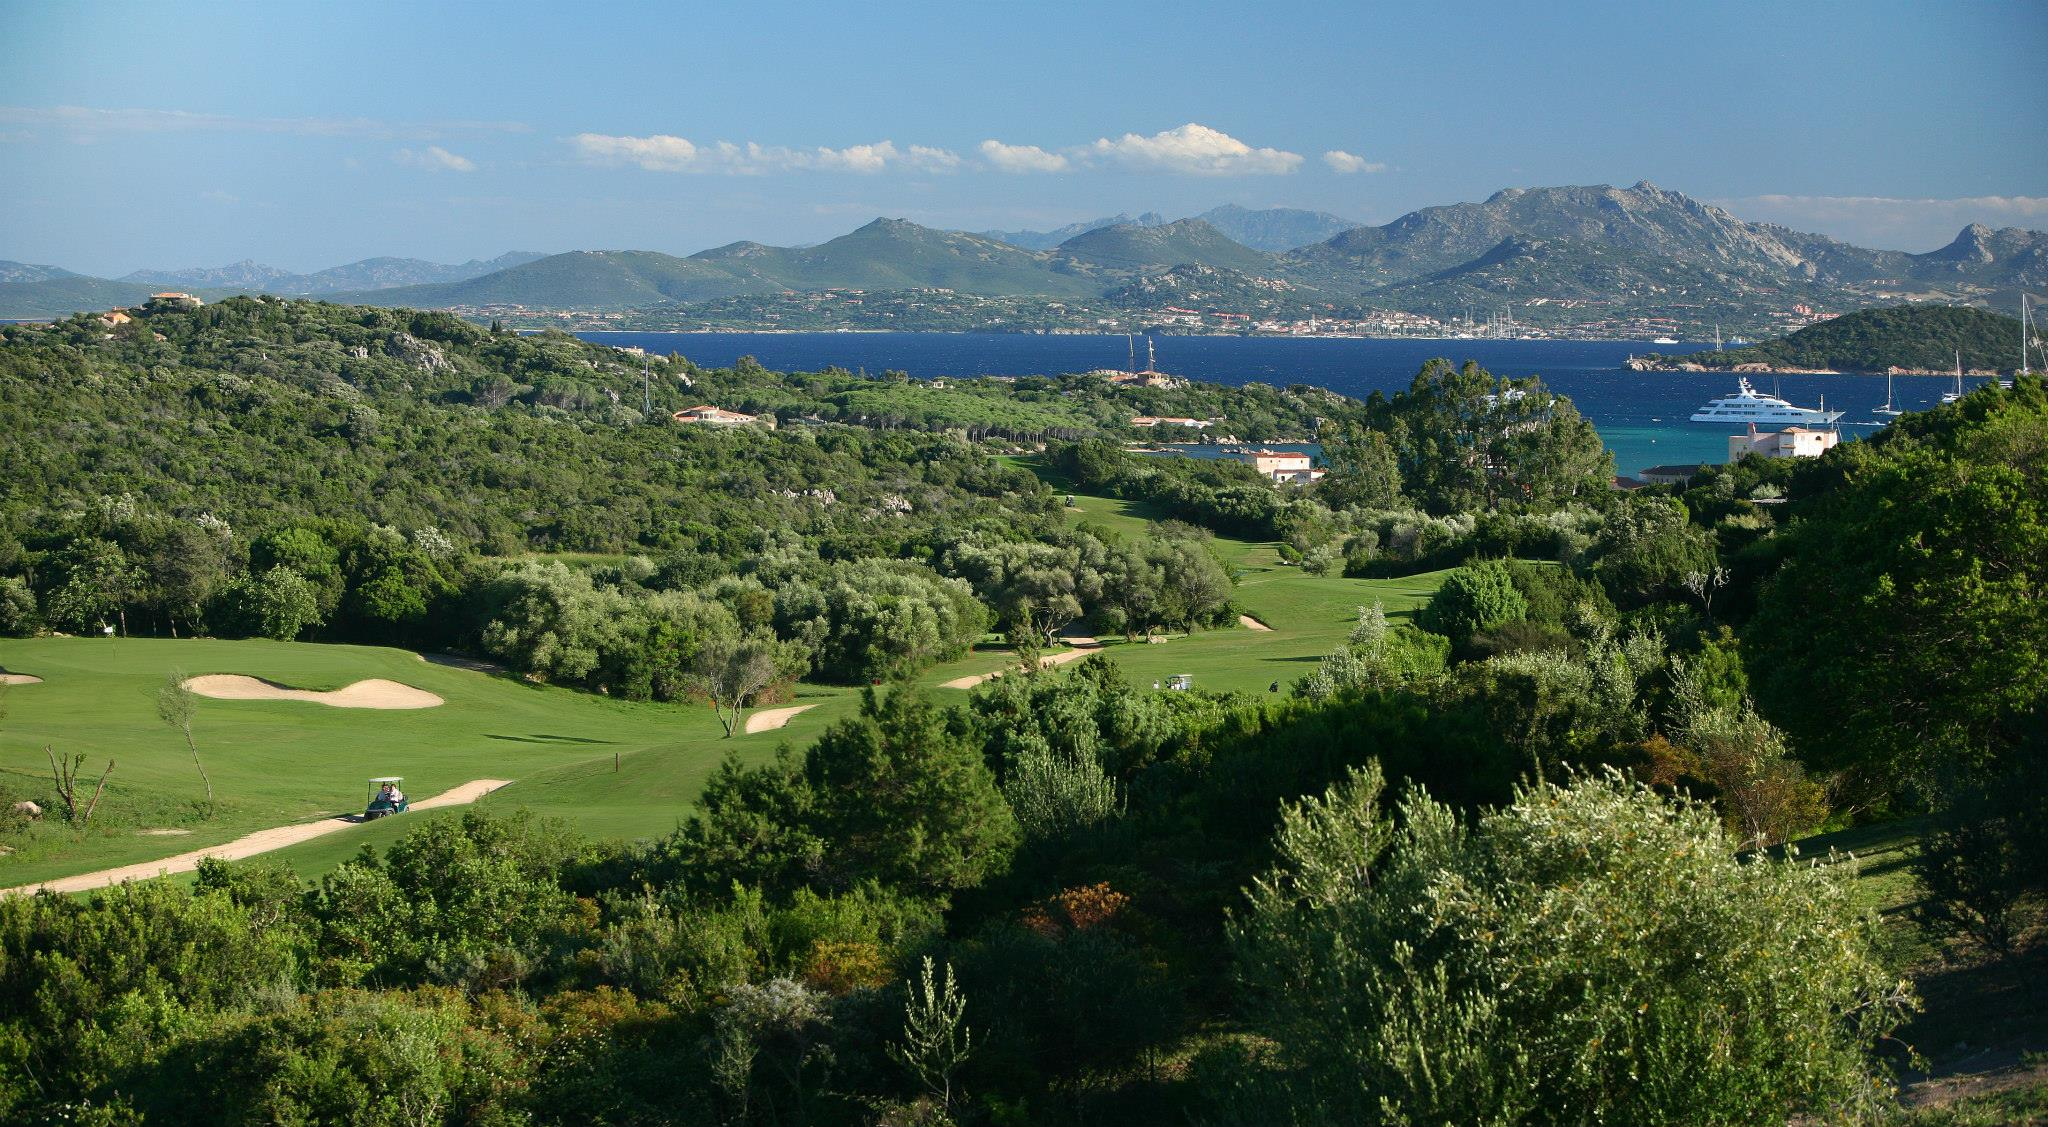 Strategically located near the golf course of Porto Cervo, with stunning sea views dominating the bay of Cala di Volpe.